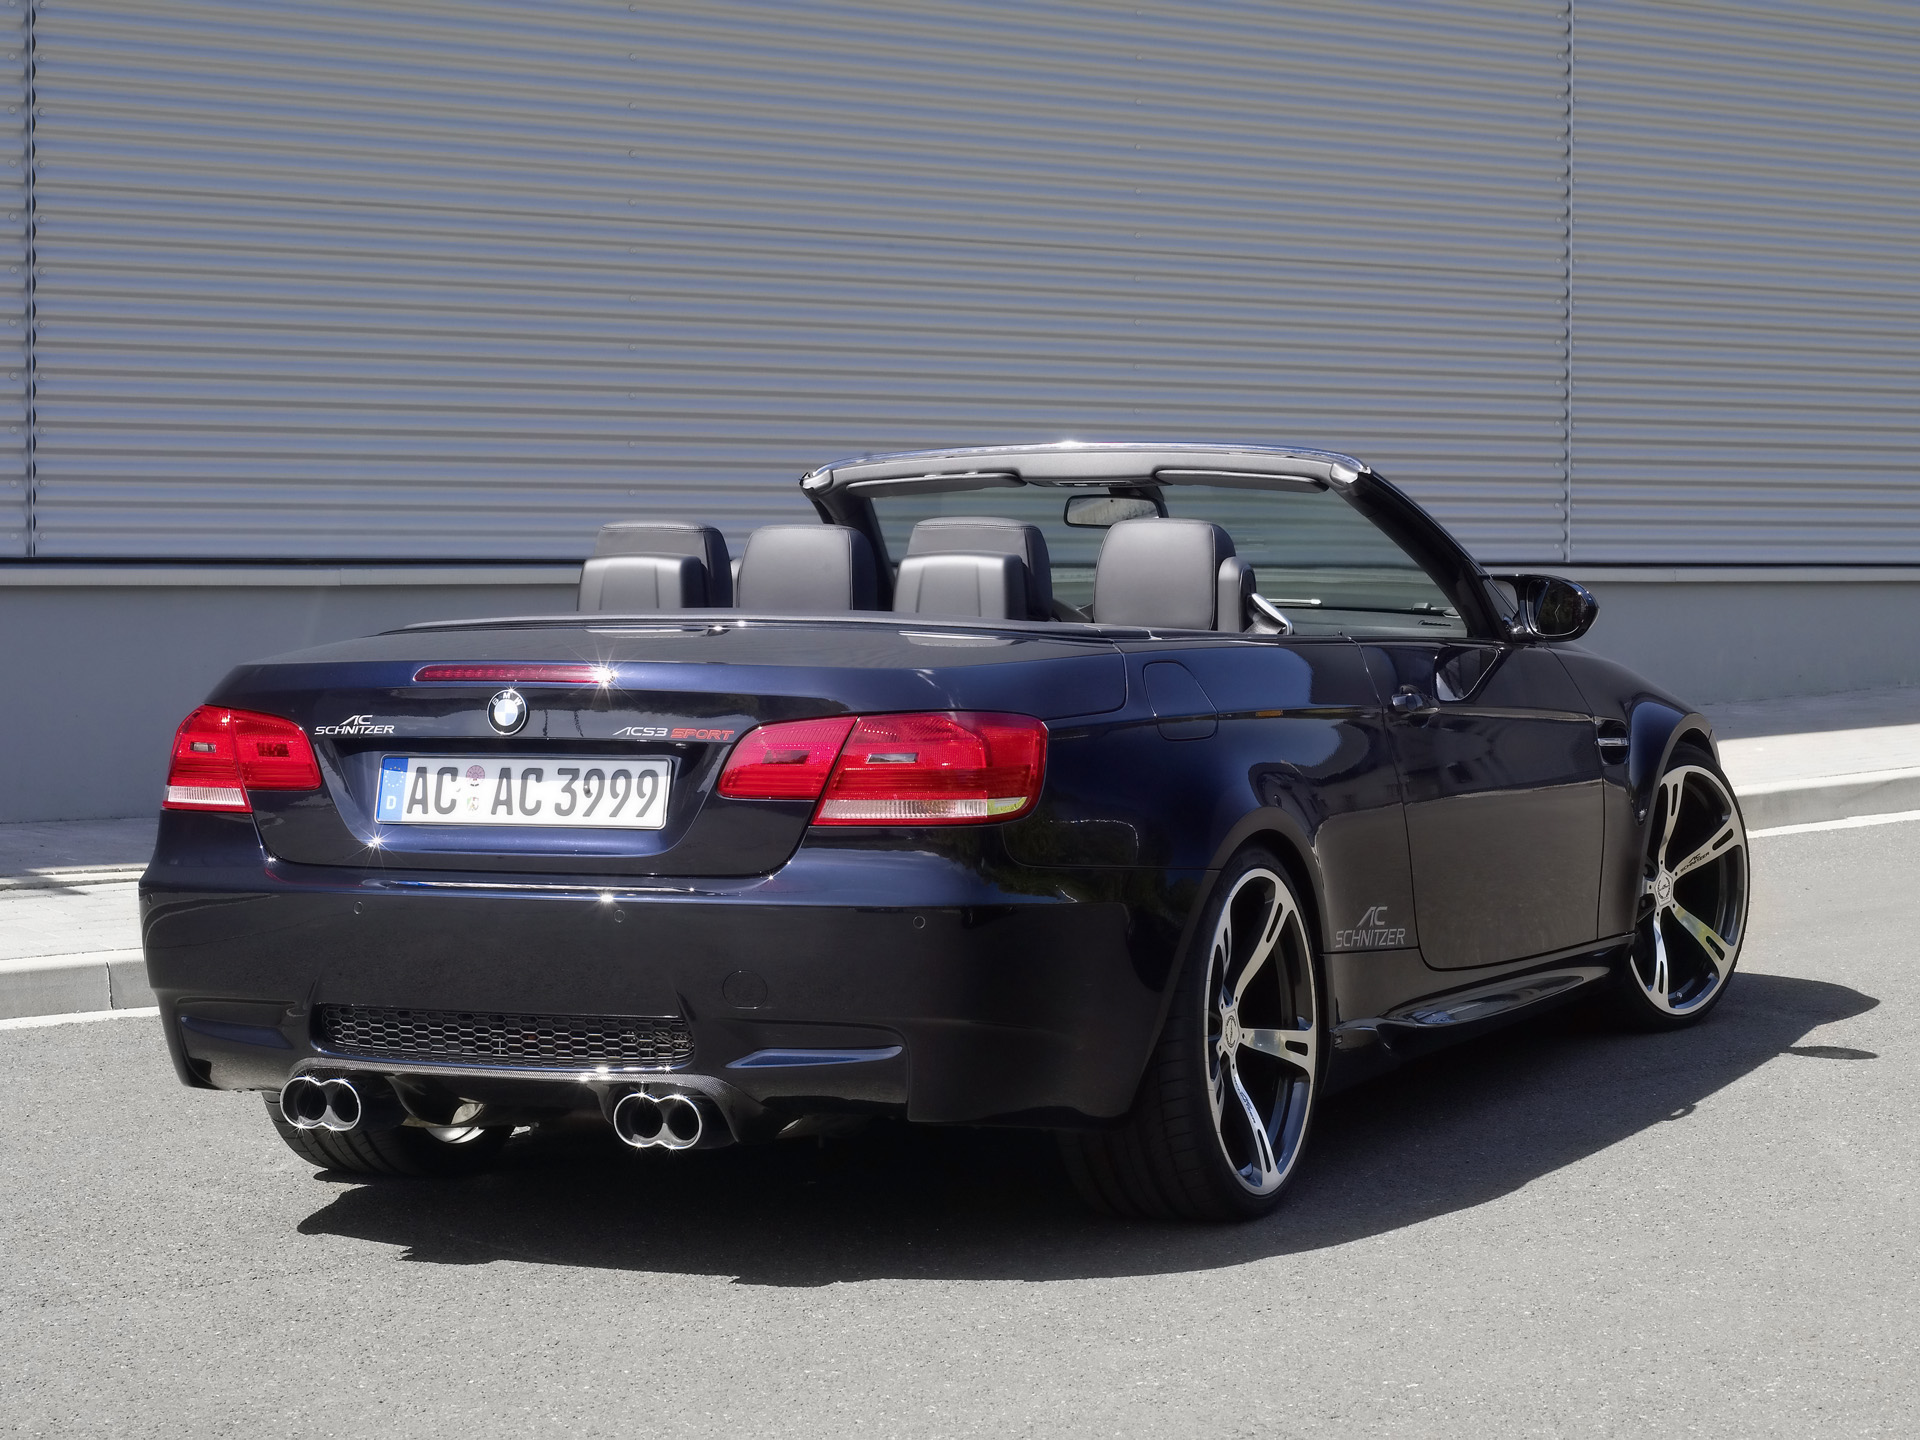 ac schnitzer acs3 sport bmw m3 convertible e93 picture 57694 ac schnitzer photo gallery. Black Bedroom Furniture Sets. Home Design Ideas